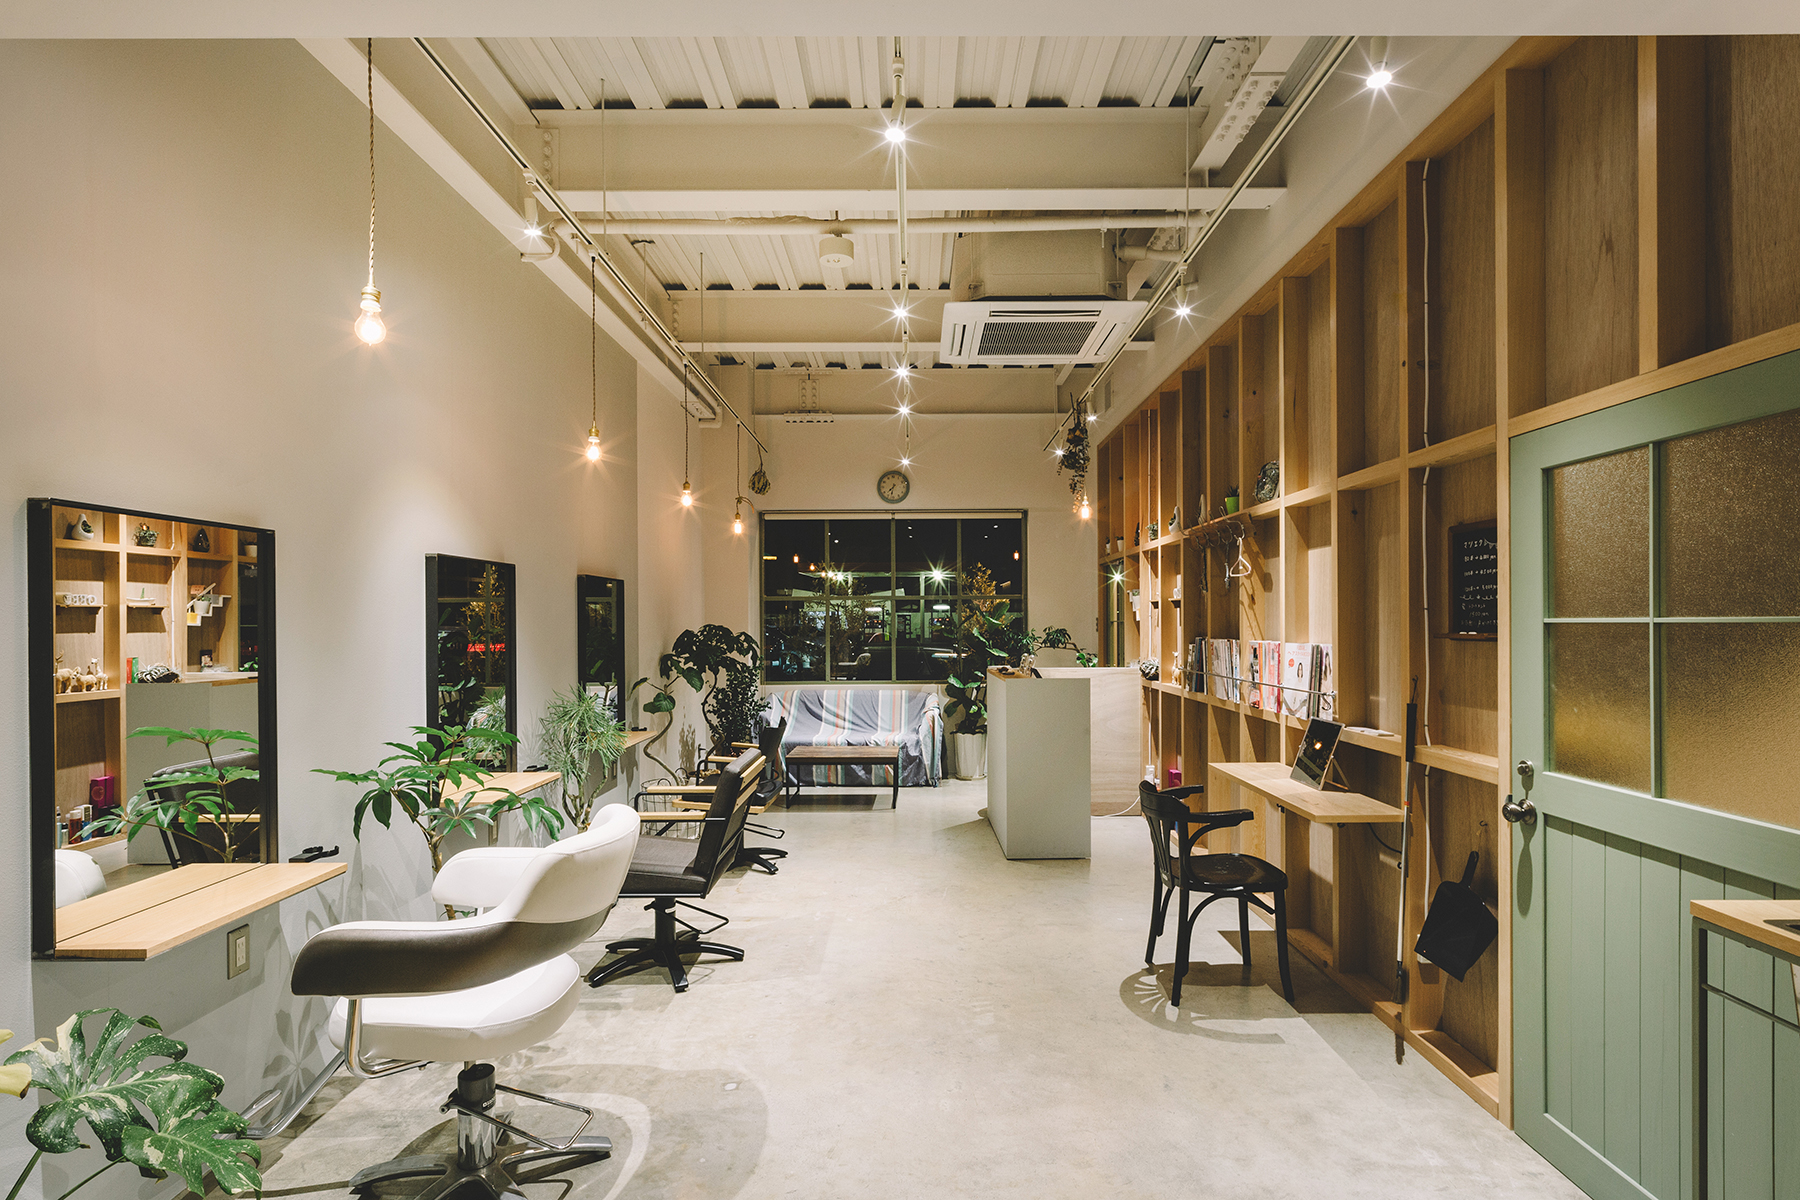 20170410HairSpace OFF_018web